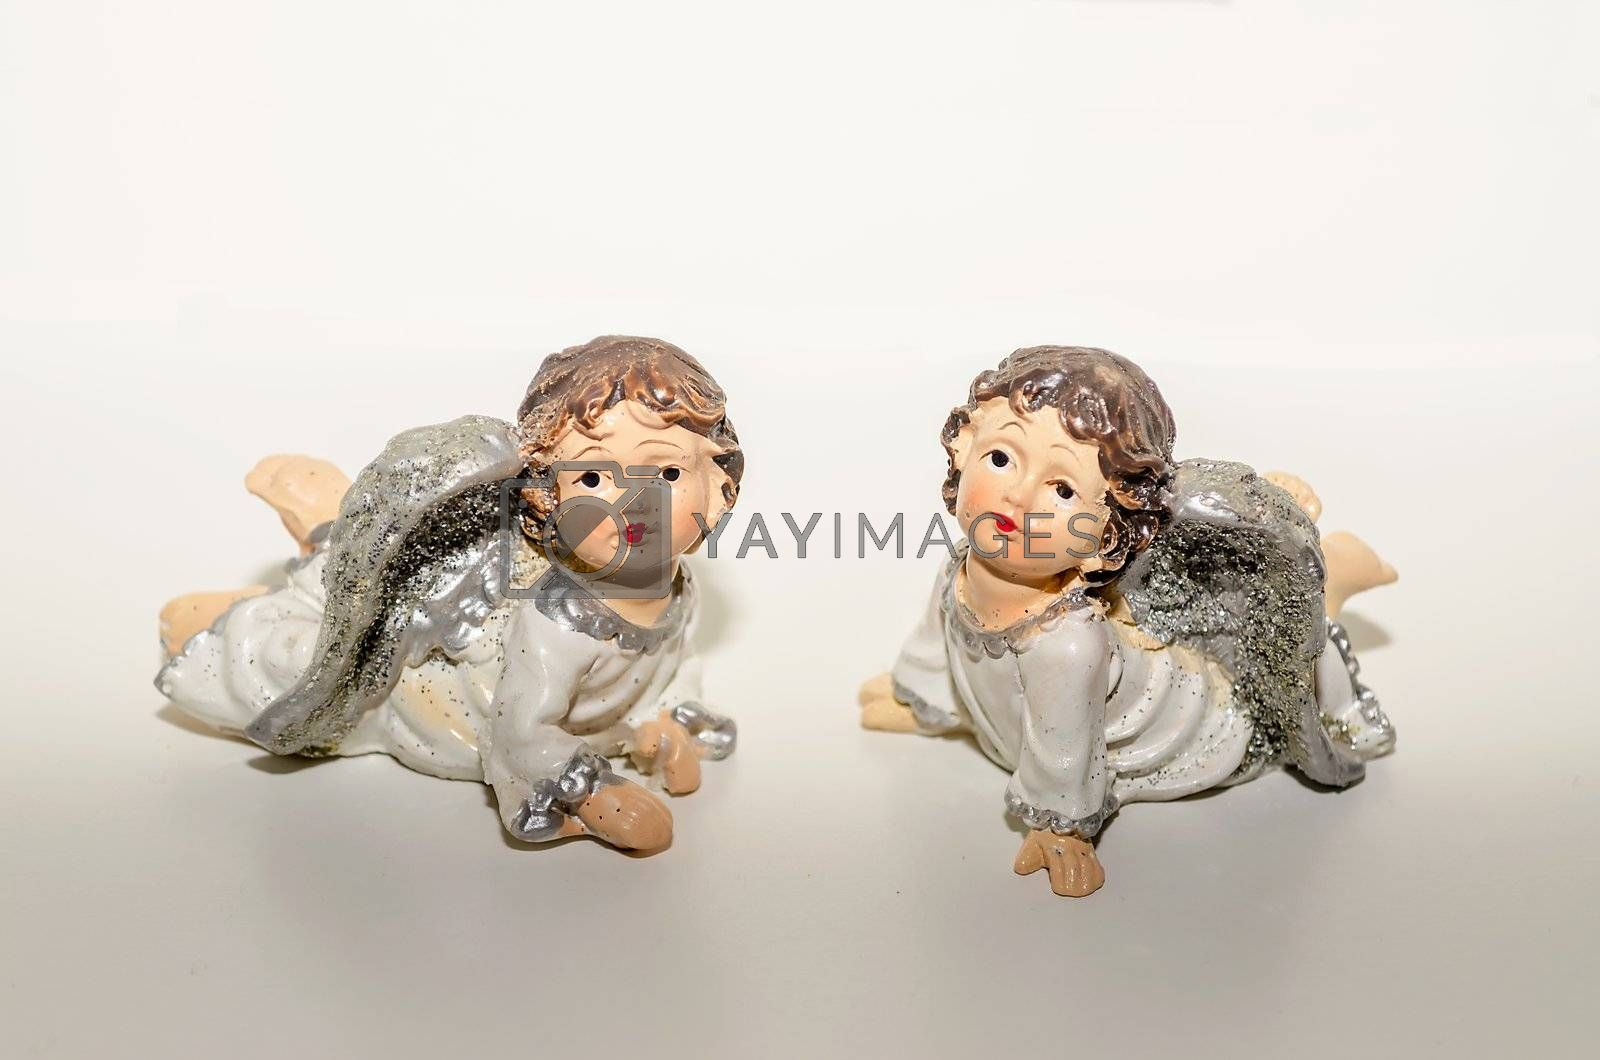 Ceramic Statuette of Two Cute Angels Close To Each Other, isolated on white